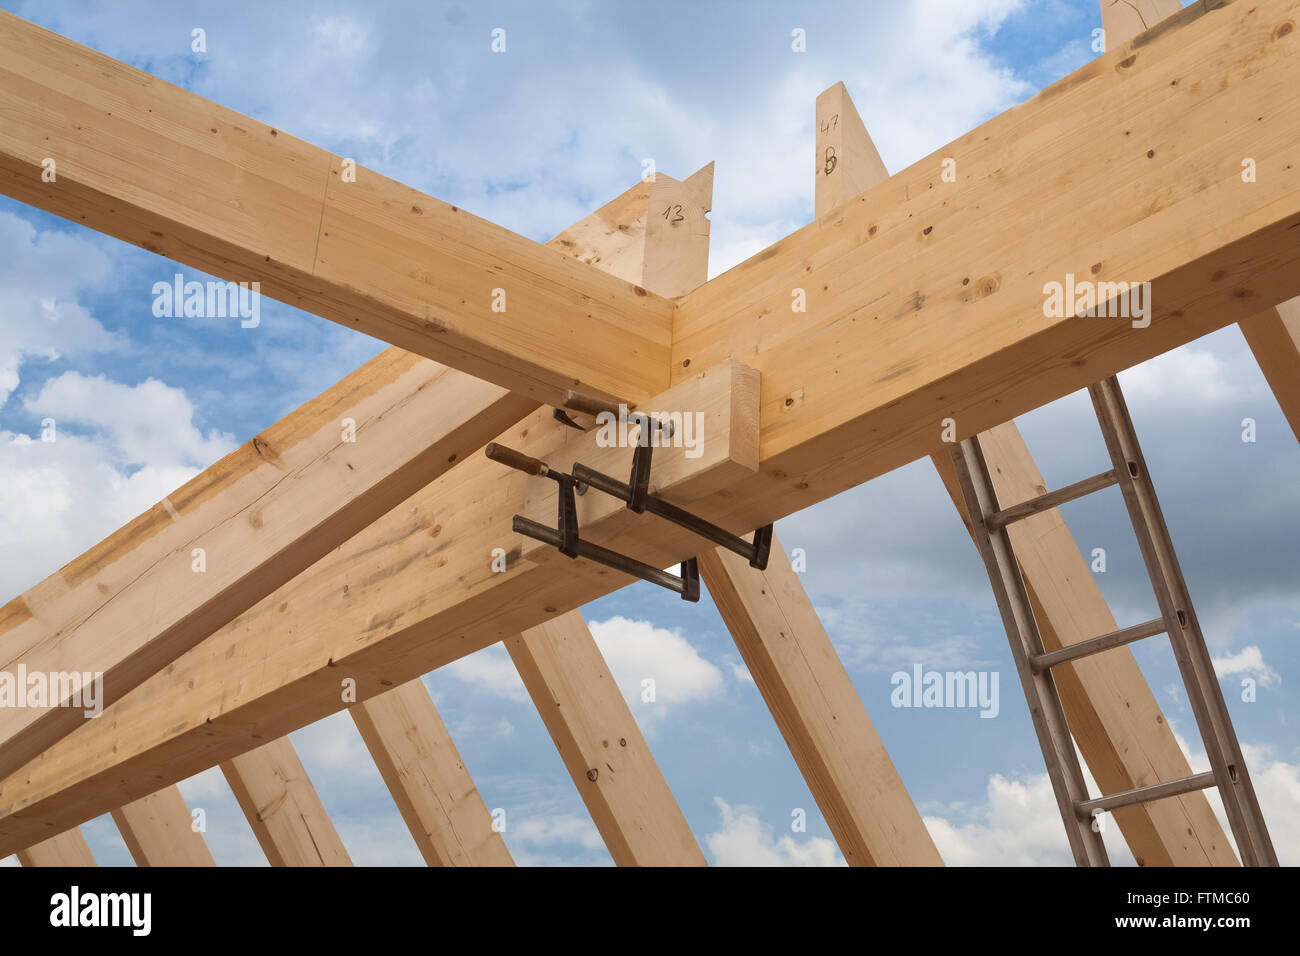 wooden roof construction - Stock Image